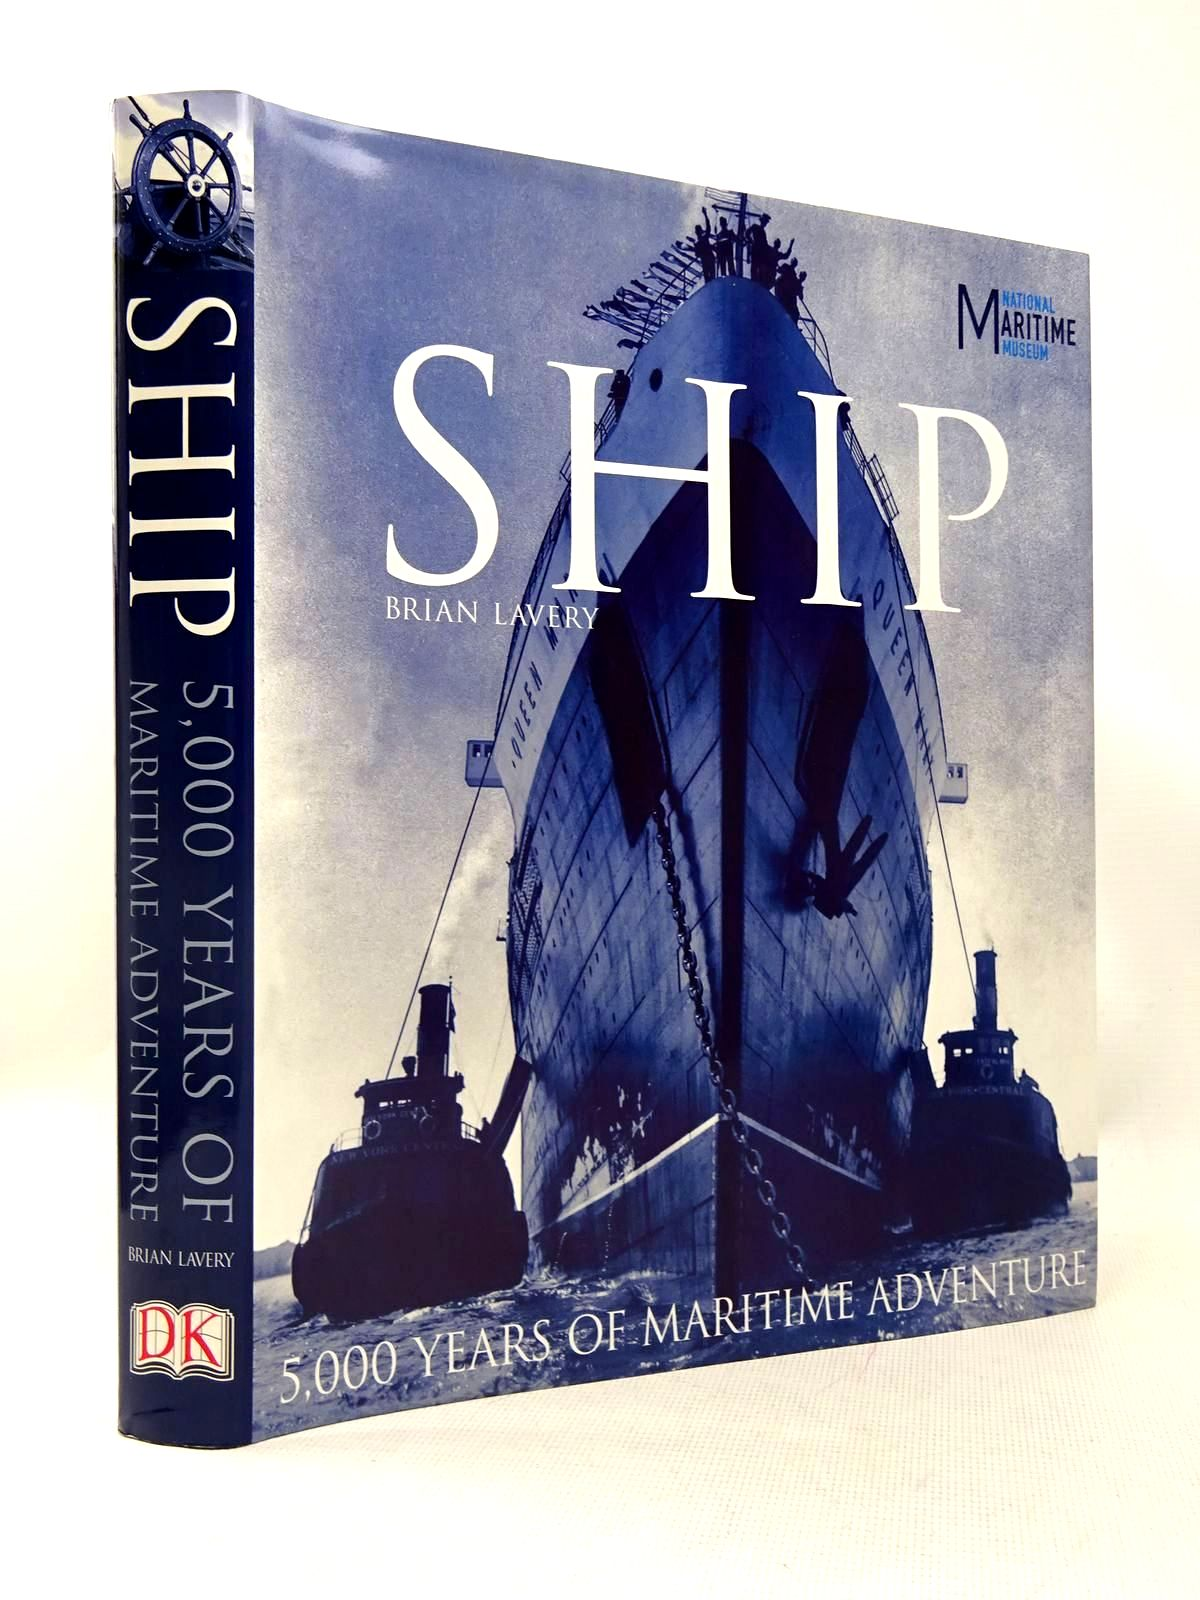 Photo of SHIP 5000 YEARS OF MARITIME ADVENTURE written by Lavery, Brian published by Dorling Kindersley (STOCK CODE: 1317491)  for sale by Stella & Rose's Books